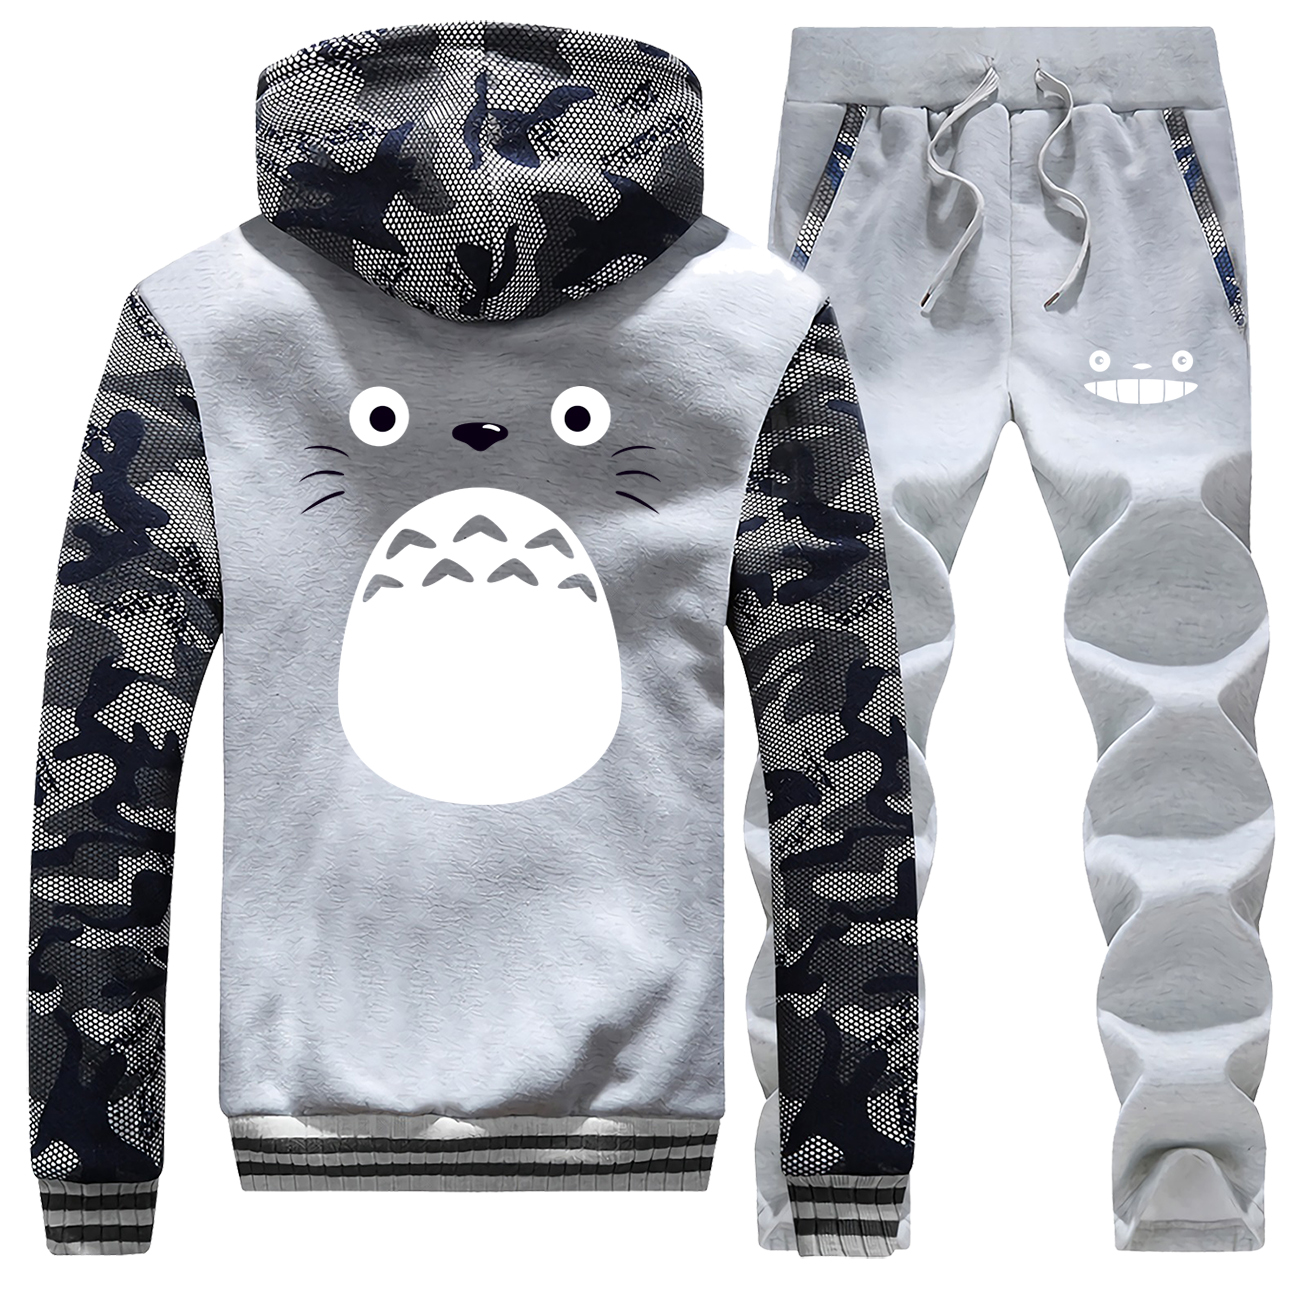 Winter Hot Sale Japan Anime Cute Totoro Men Hoodie Fashion Sportswear Camouflage Coat Thick Suit Warm Jackets+Pants 2 Piece Set